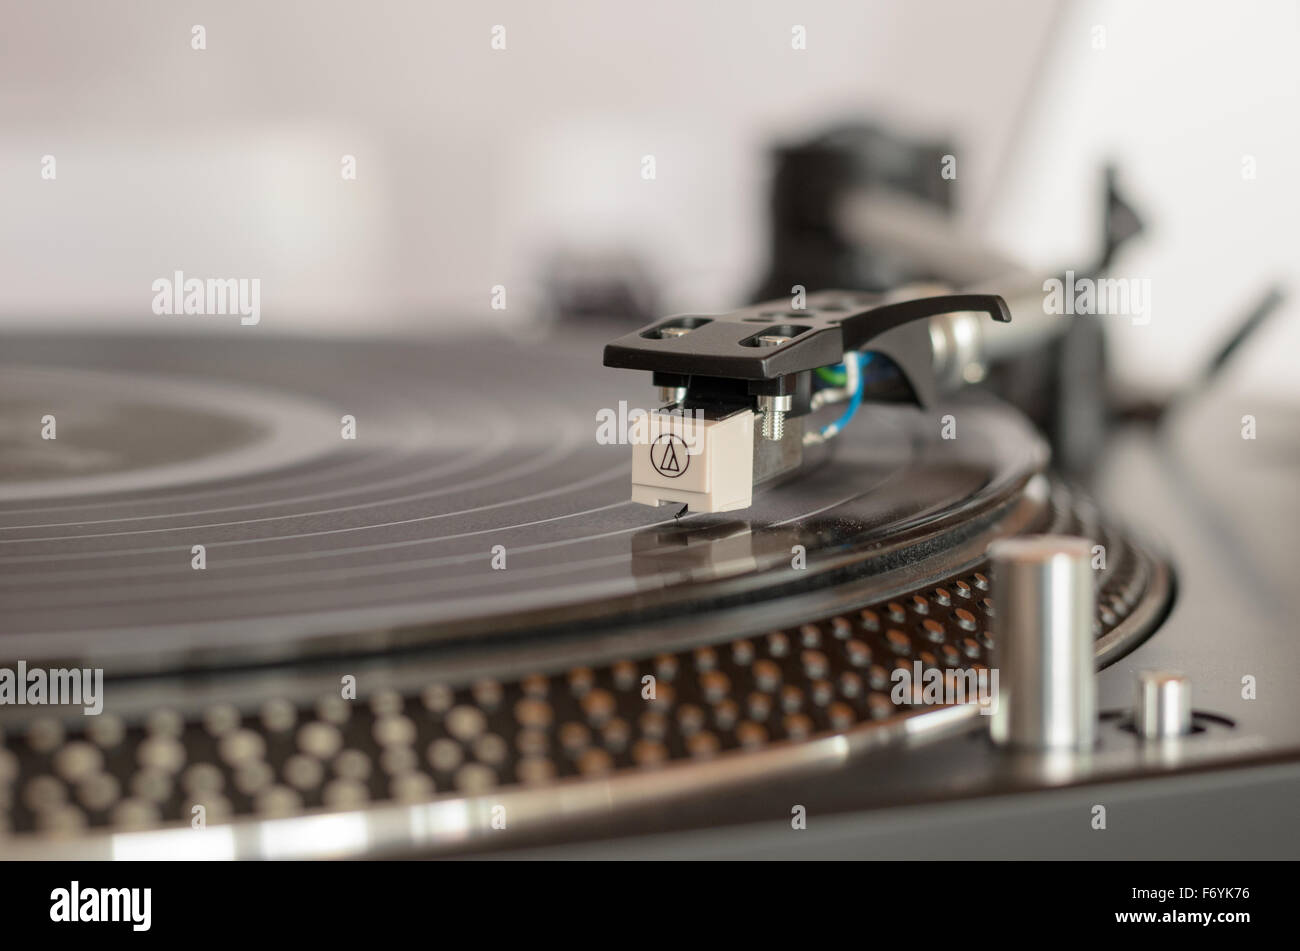 Closeup of a retro turntable while playing a vinyl record - Stock Image